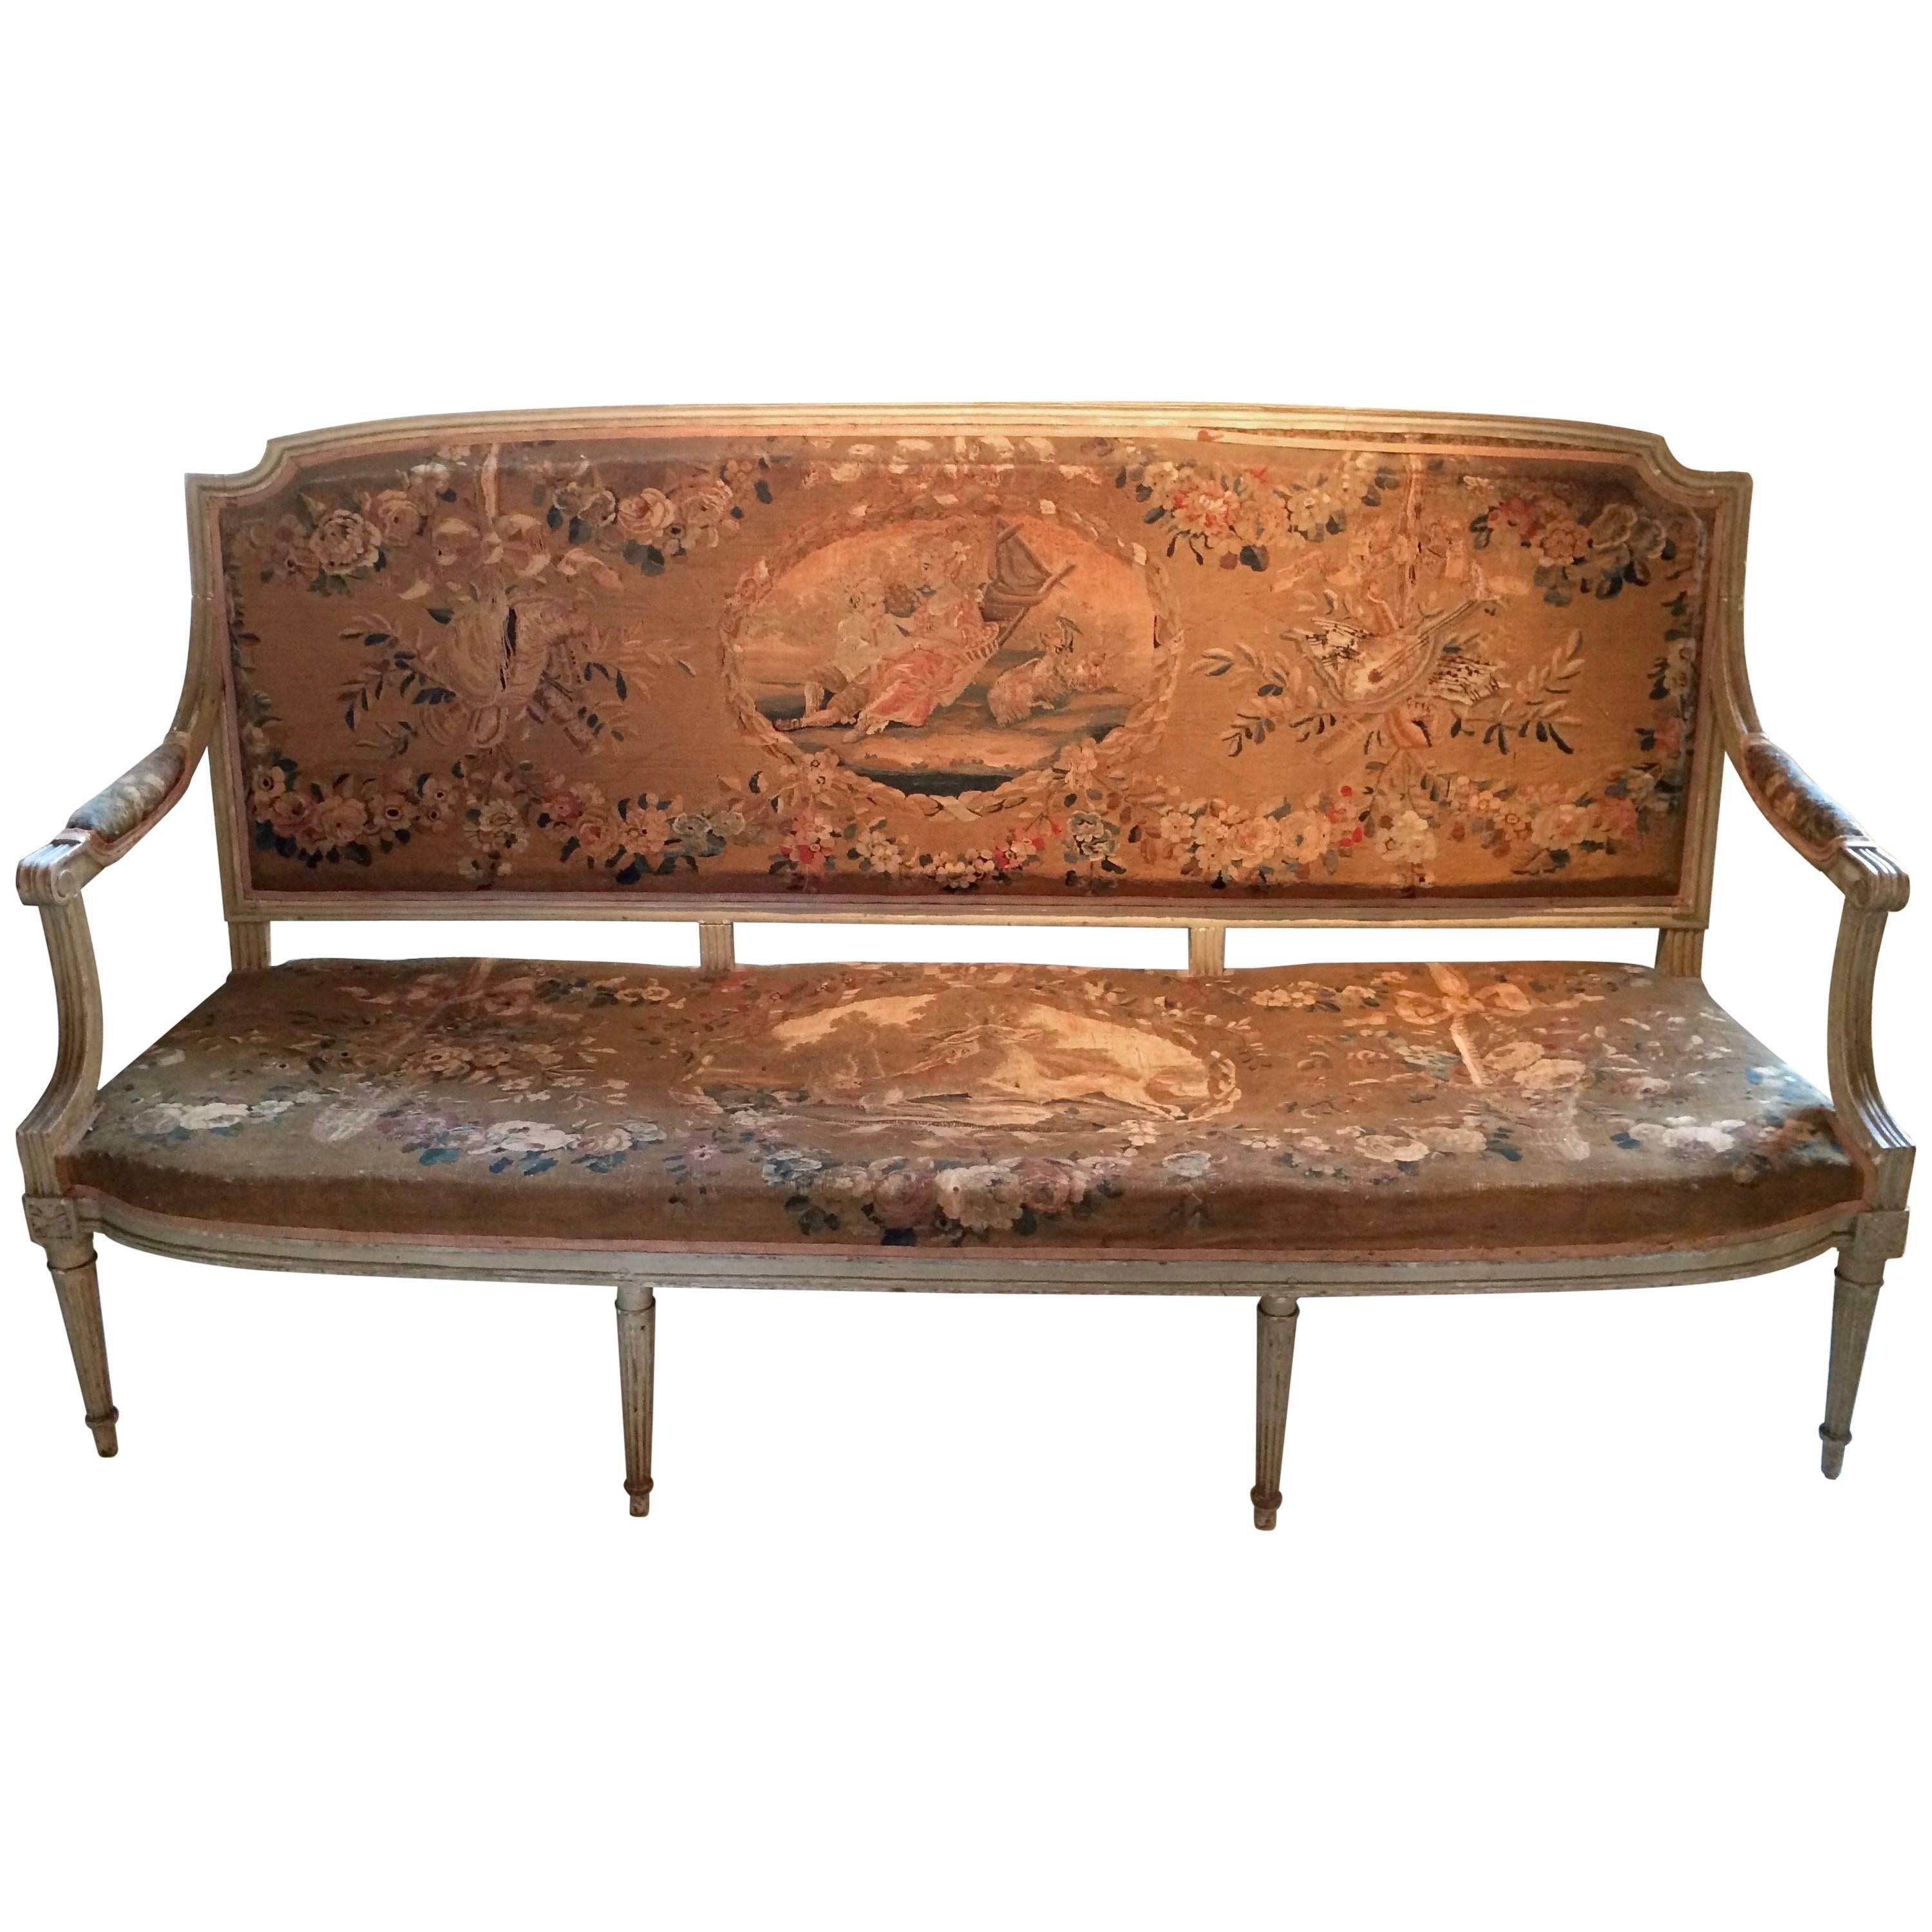 Canape Sofa Museum Quality Original Louis Xvi Tapestry And Painted Canape Sofa